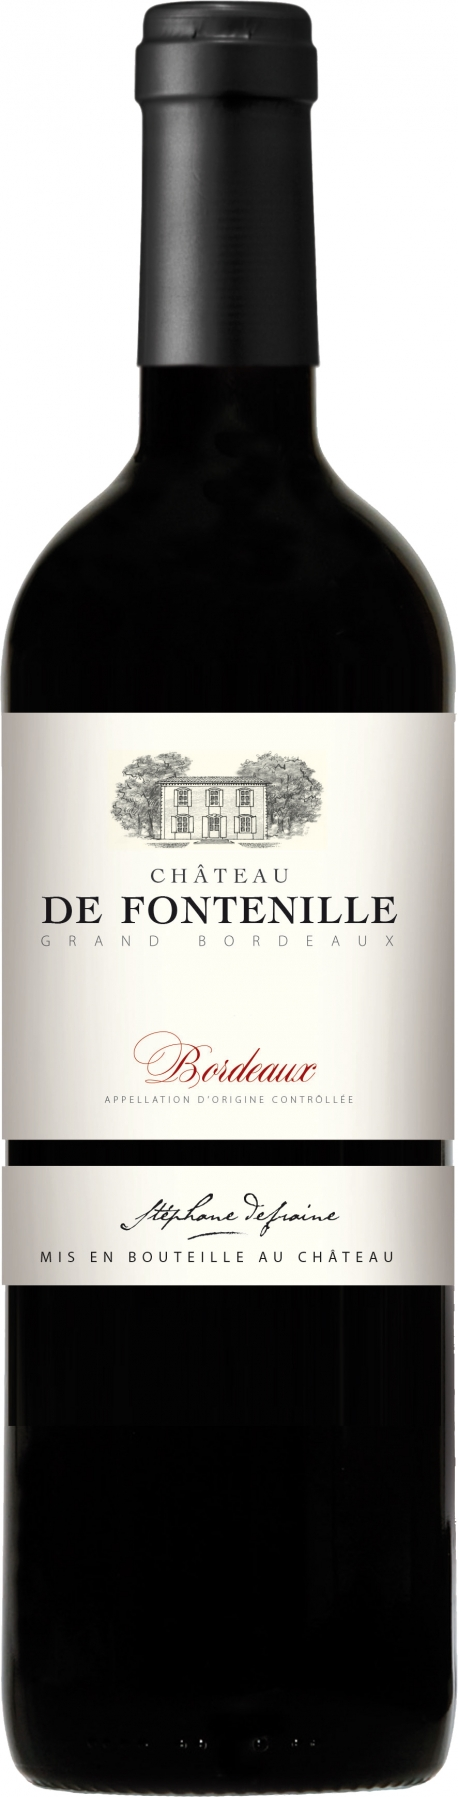 Chateau de Fontenille - Bordeaux Rouge 2015 (75cl Bottle)